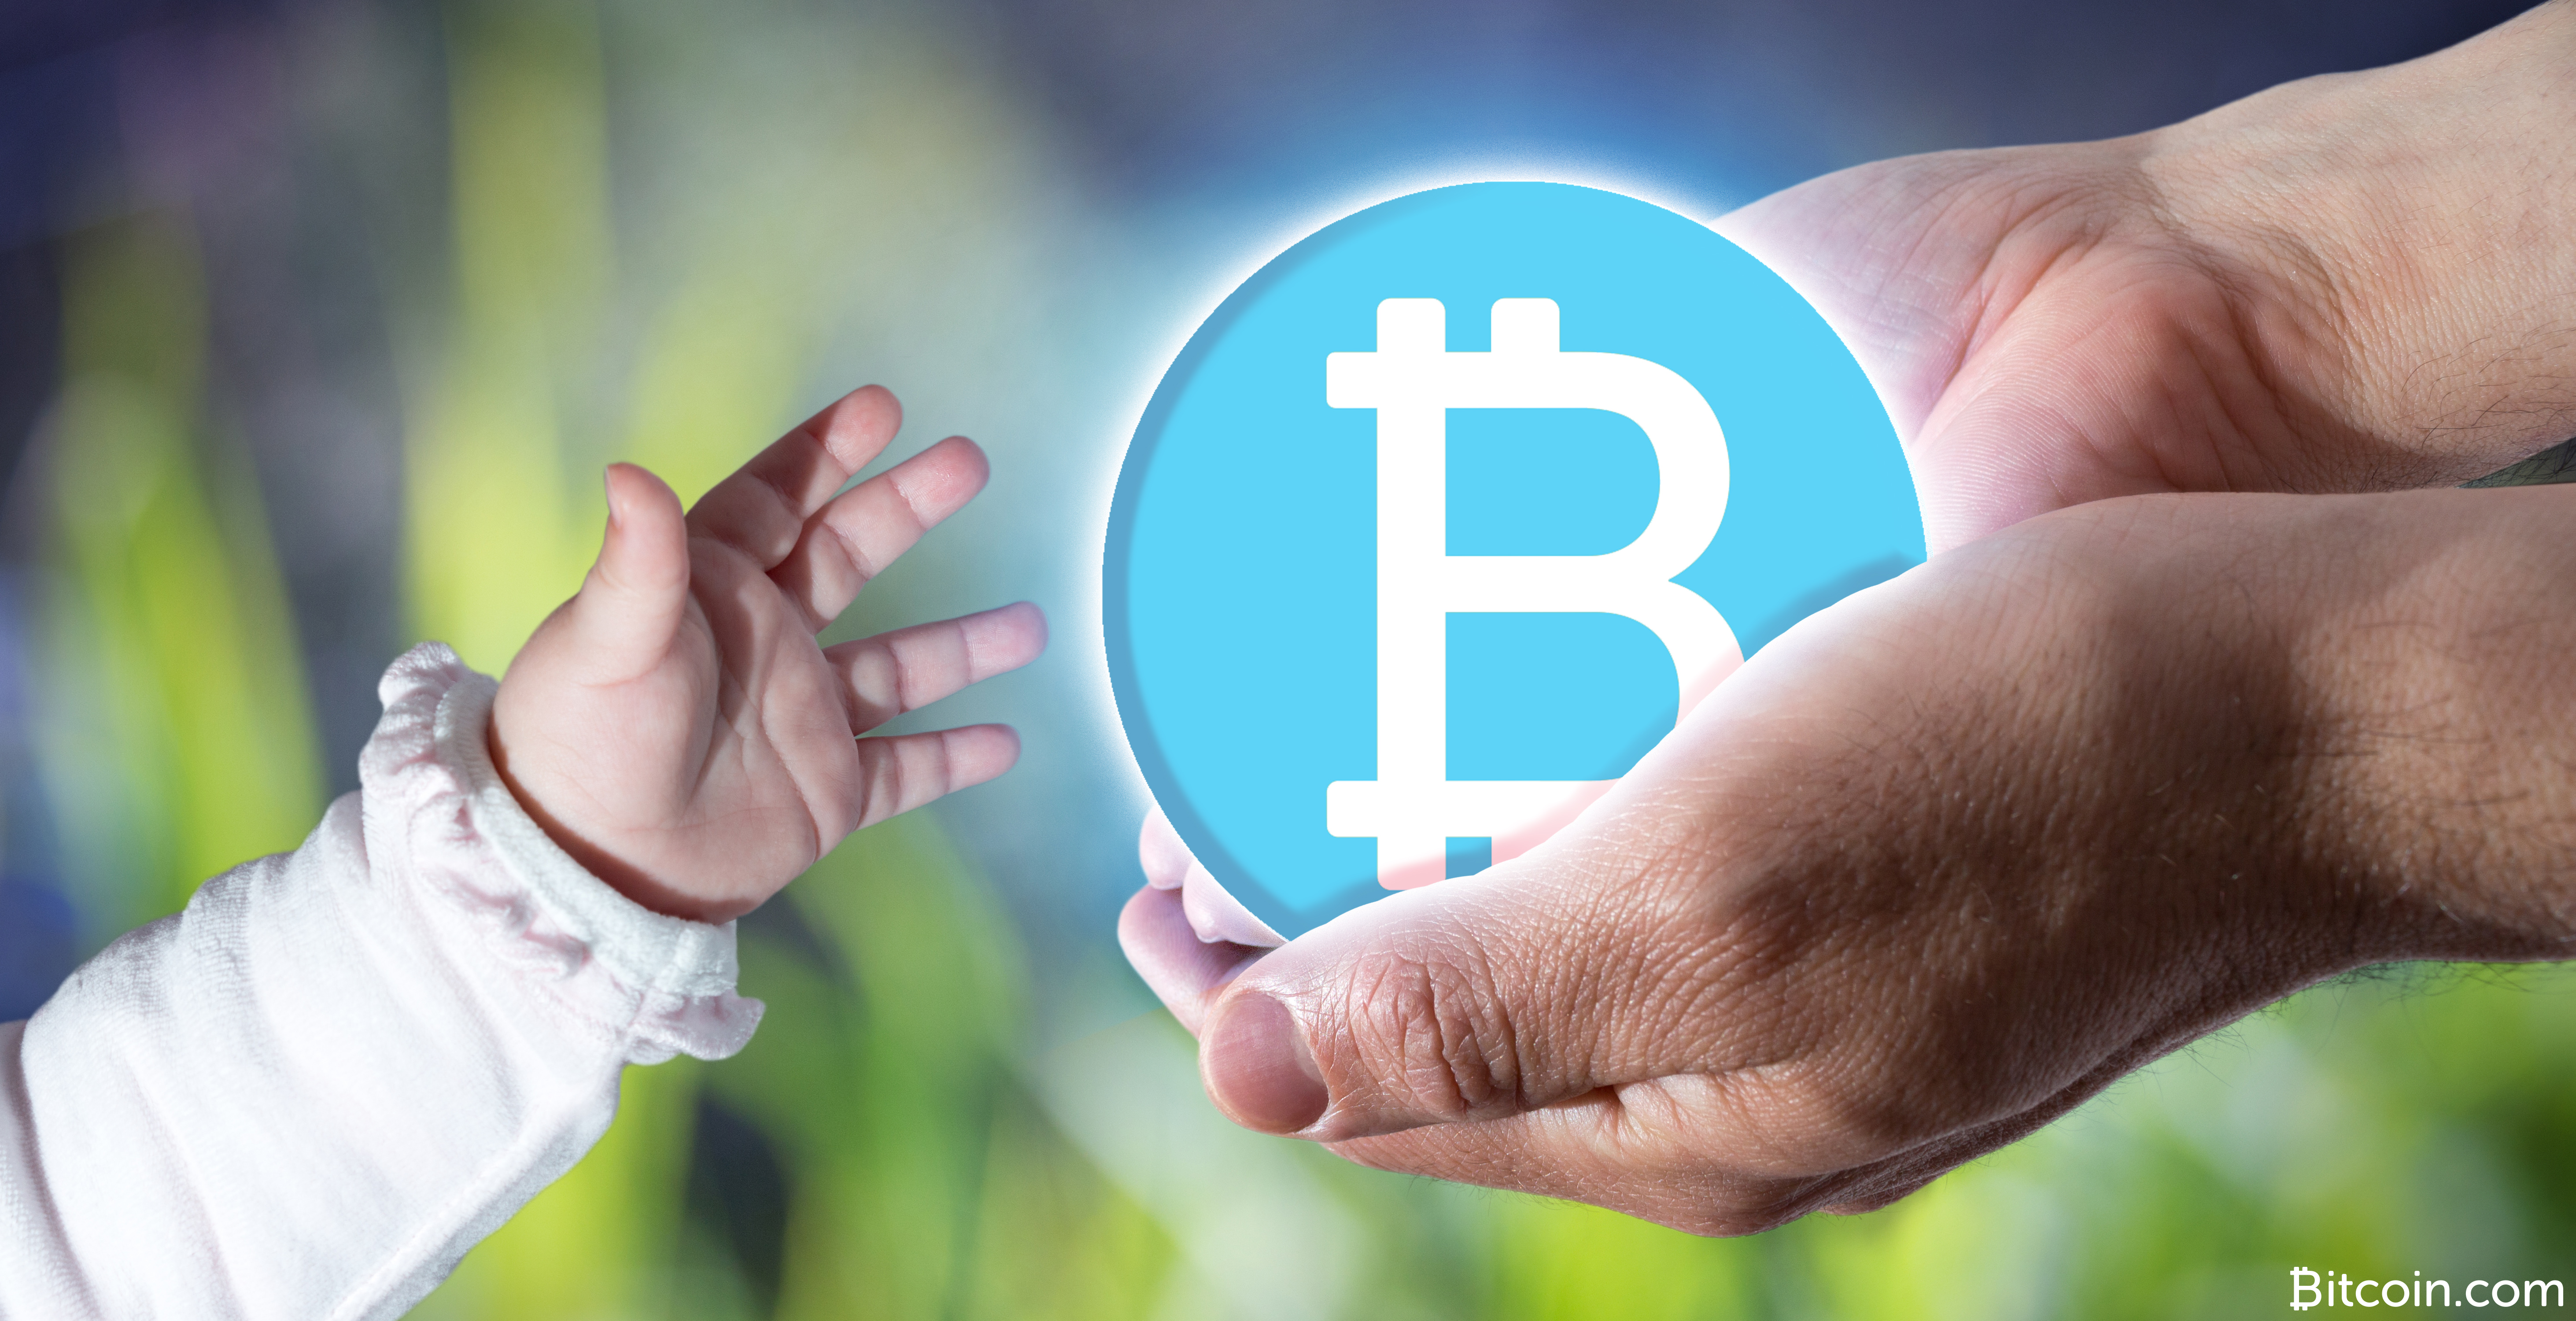 Bitcoin's Social Contract Must Be Resilient to the Whims of Future Generations